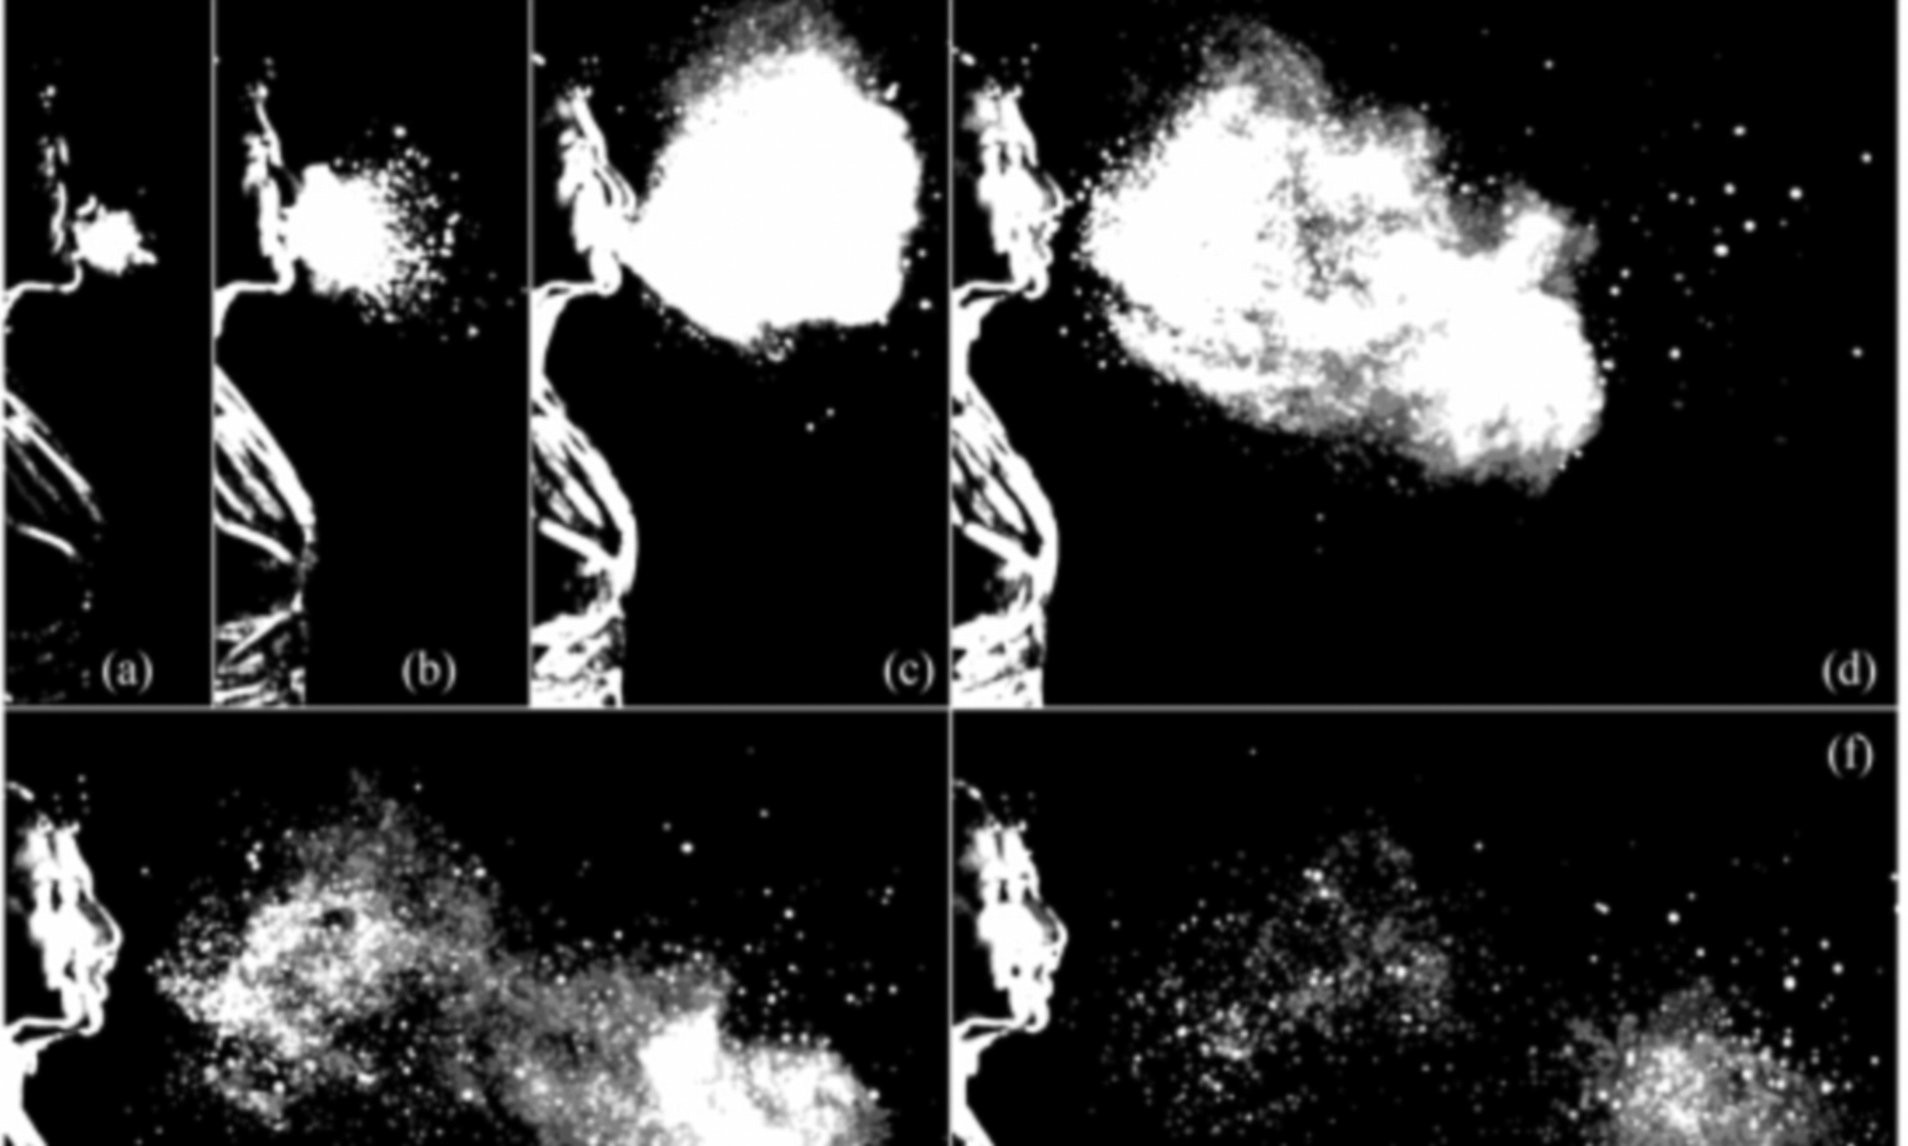 High-speed video images of a sneeze recorded at 1,000 frames per second shown at times in seconds:  a) 0.006, b) 0.029, c) 0.106, d) 0.161, e) 0.222, and f) 0.341 seconds.